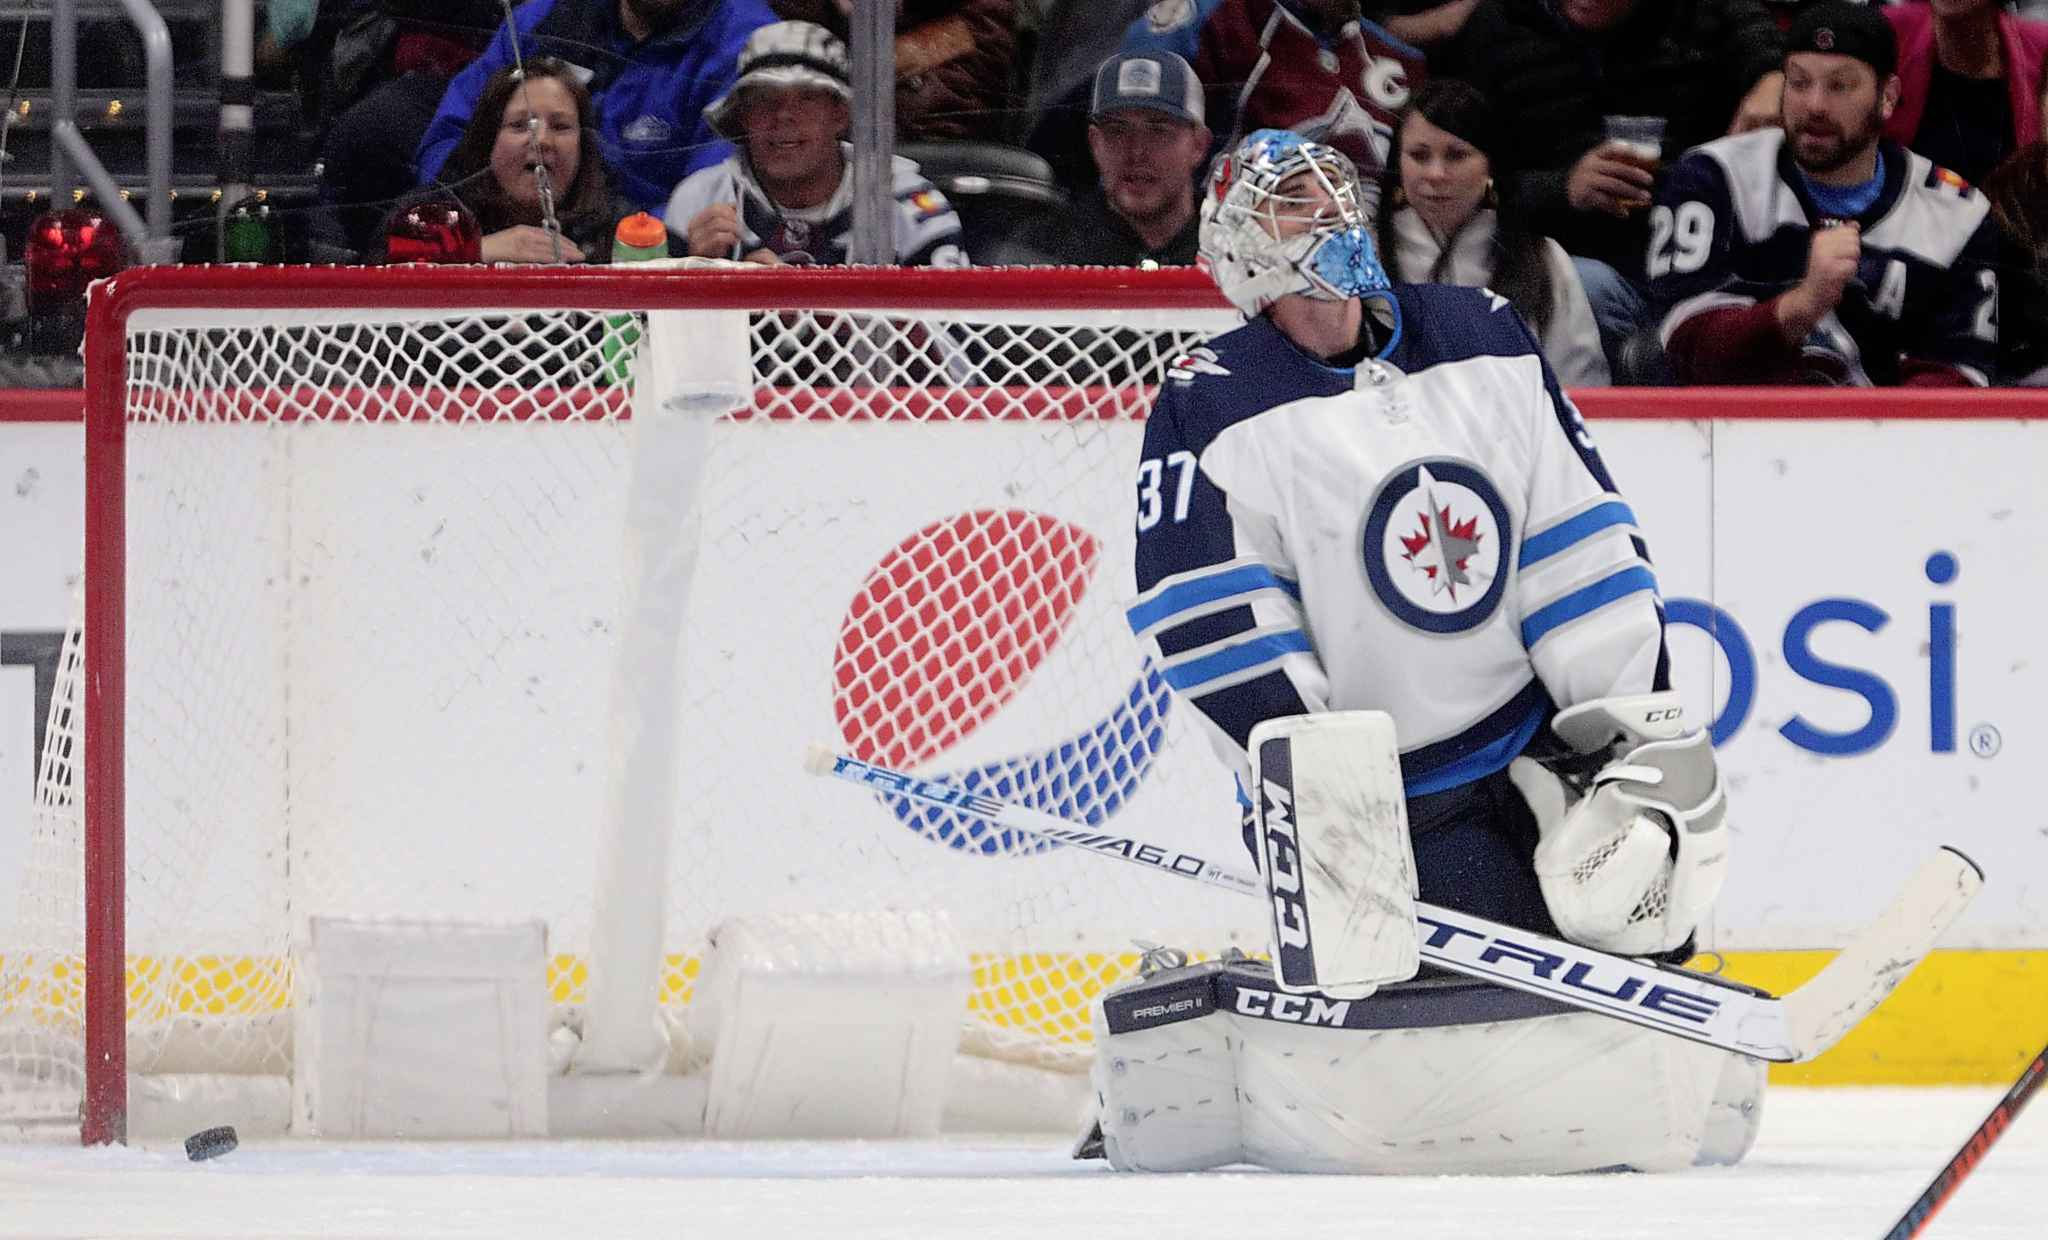 Winnipeg Jets goaltender Connor Hellebuyck reacts to Colorado Avalanche center Carl Soderberg's goal during the third period of an NHL hockey game in Denver, Thursday, April 4, 2019. Colorado won 3-2 in overtime. (AP Photo/Joe Mahoney)